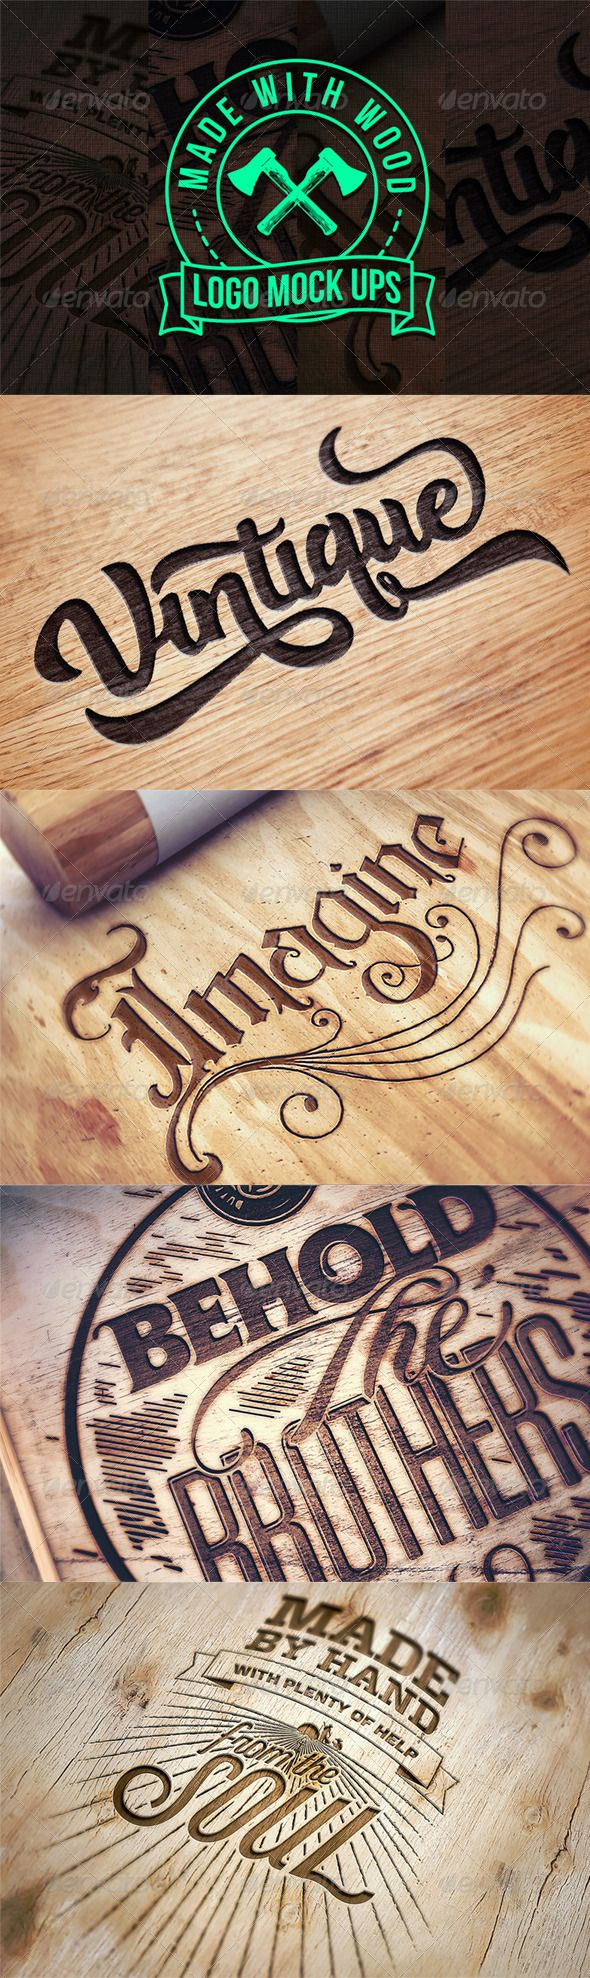 Engraved Wood Logo MockUps #logo #mockup Download: http://graphicriver.net/item/engraved-wood-logo-mock-ups/7646728?ref=ksioks